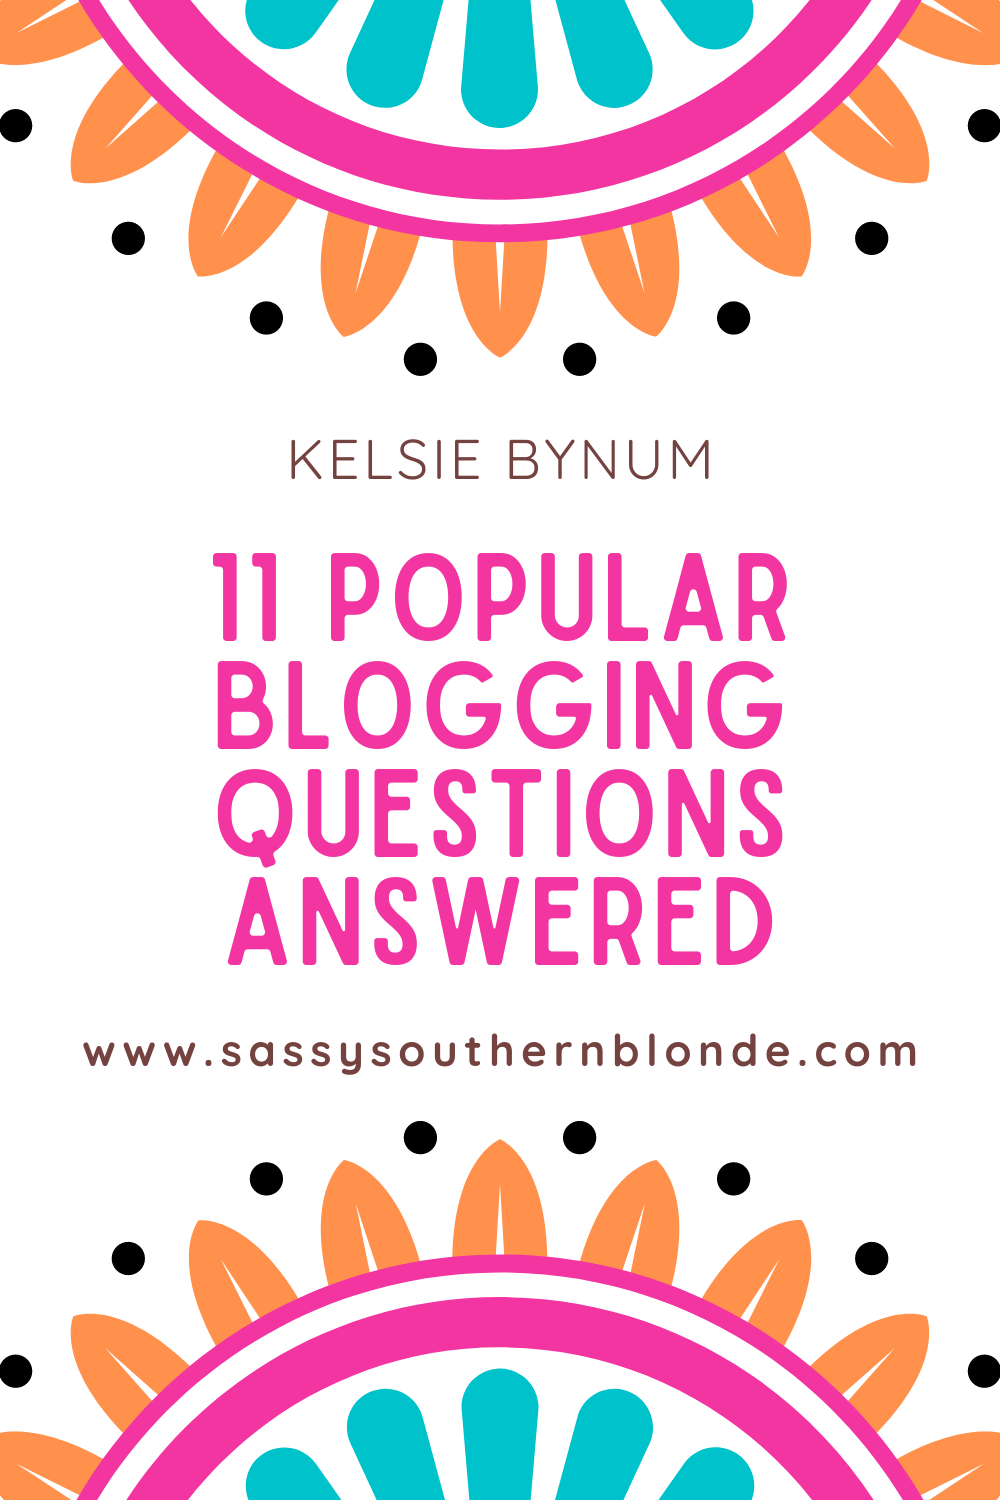 11 Popular Blogging Questions Answered